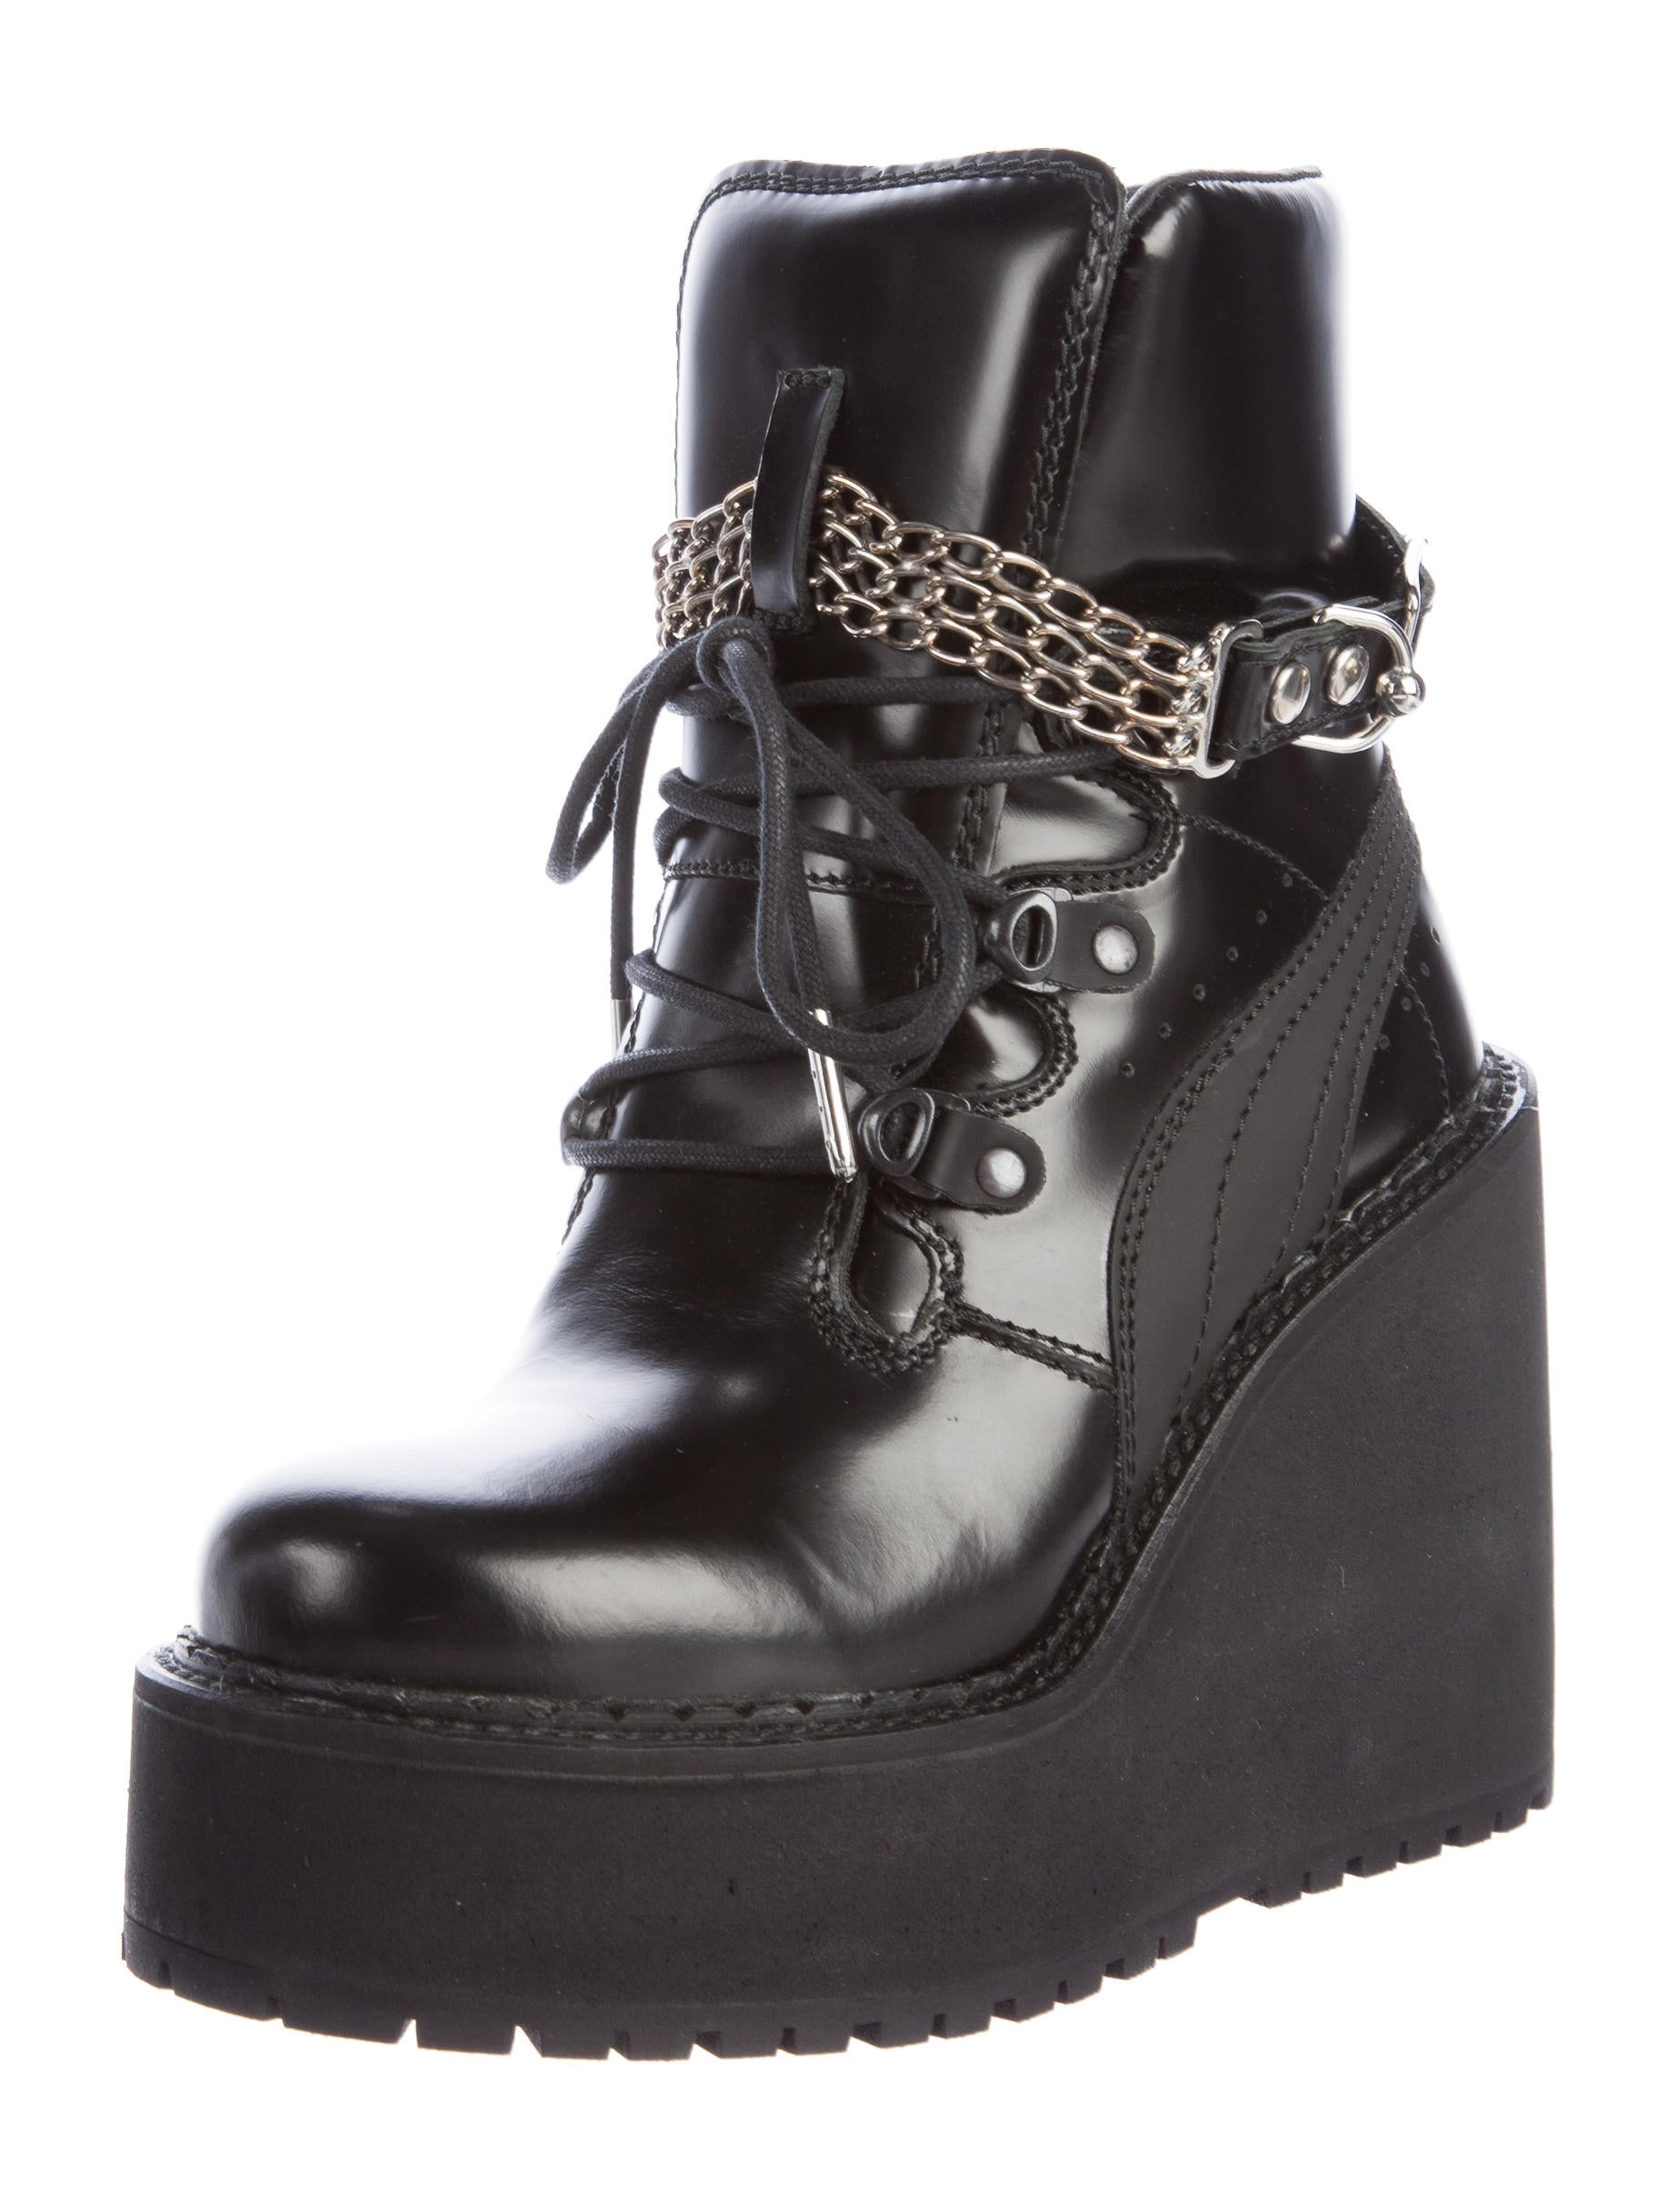 buy cheap collections Fenty x Puma Chain-Link Wedge Boots w/ Tags cheap newest clearance discounts cheap cheap online ZpZD9